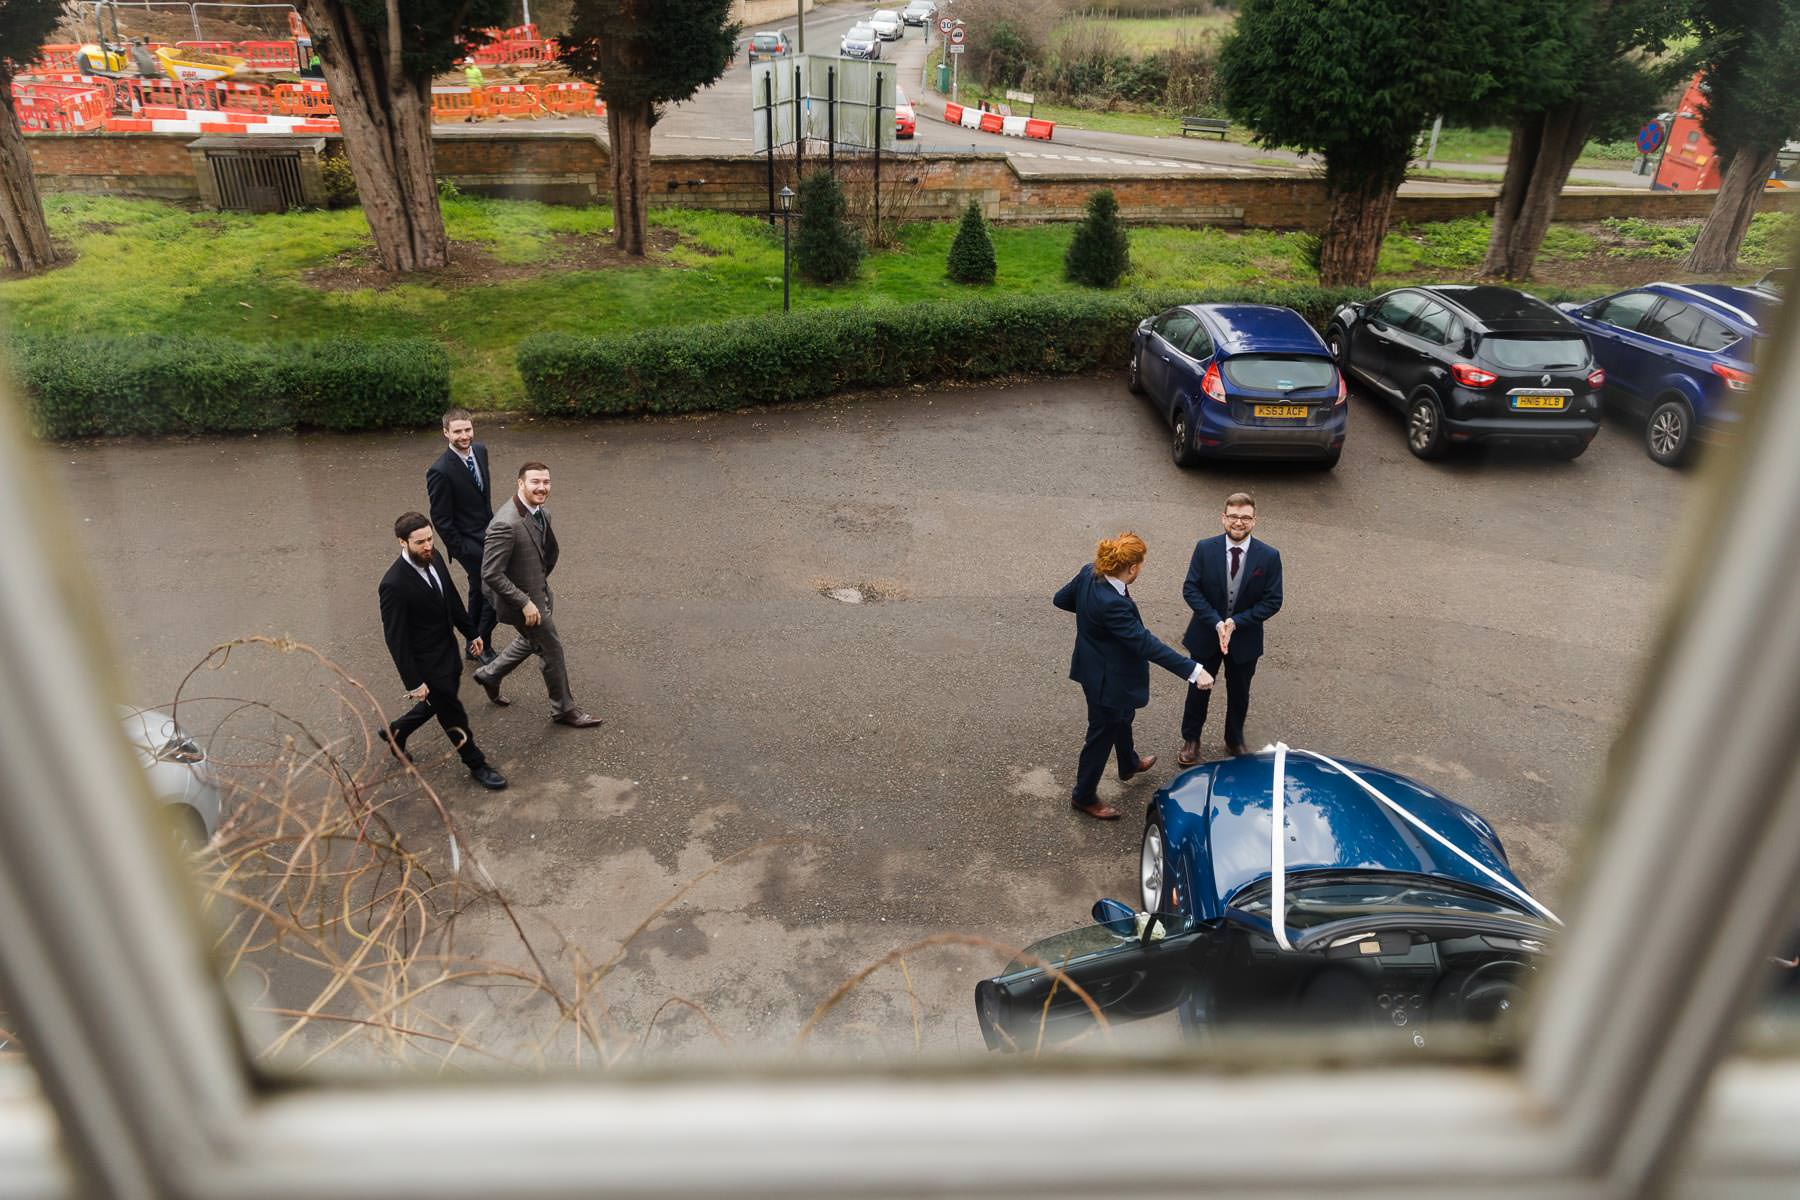 Groom arriving at barton hall with his groomsmen